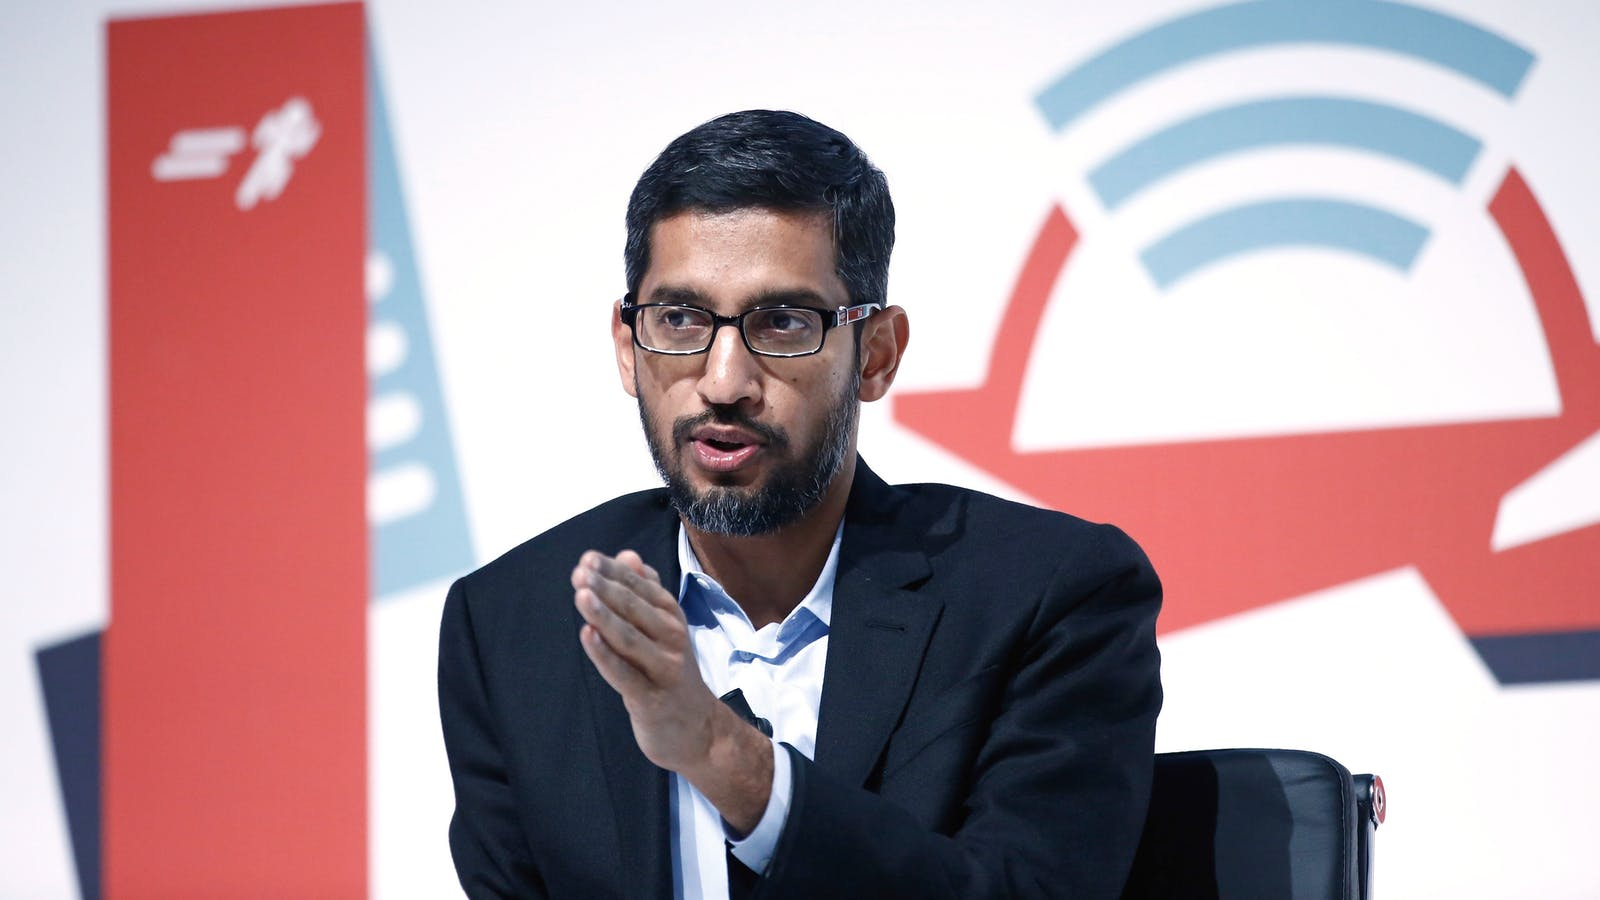 Google CEO Sundar Pichai at Mobile World Congress earlier this year. Photo by Bloomberg.